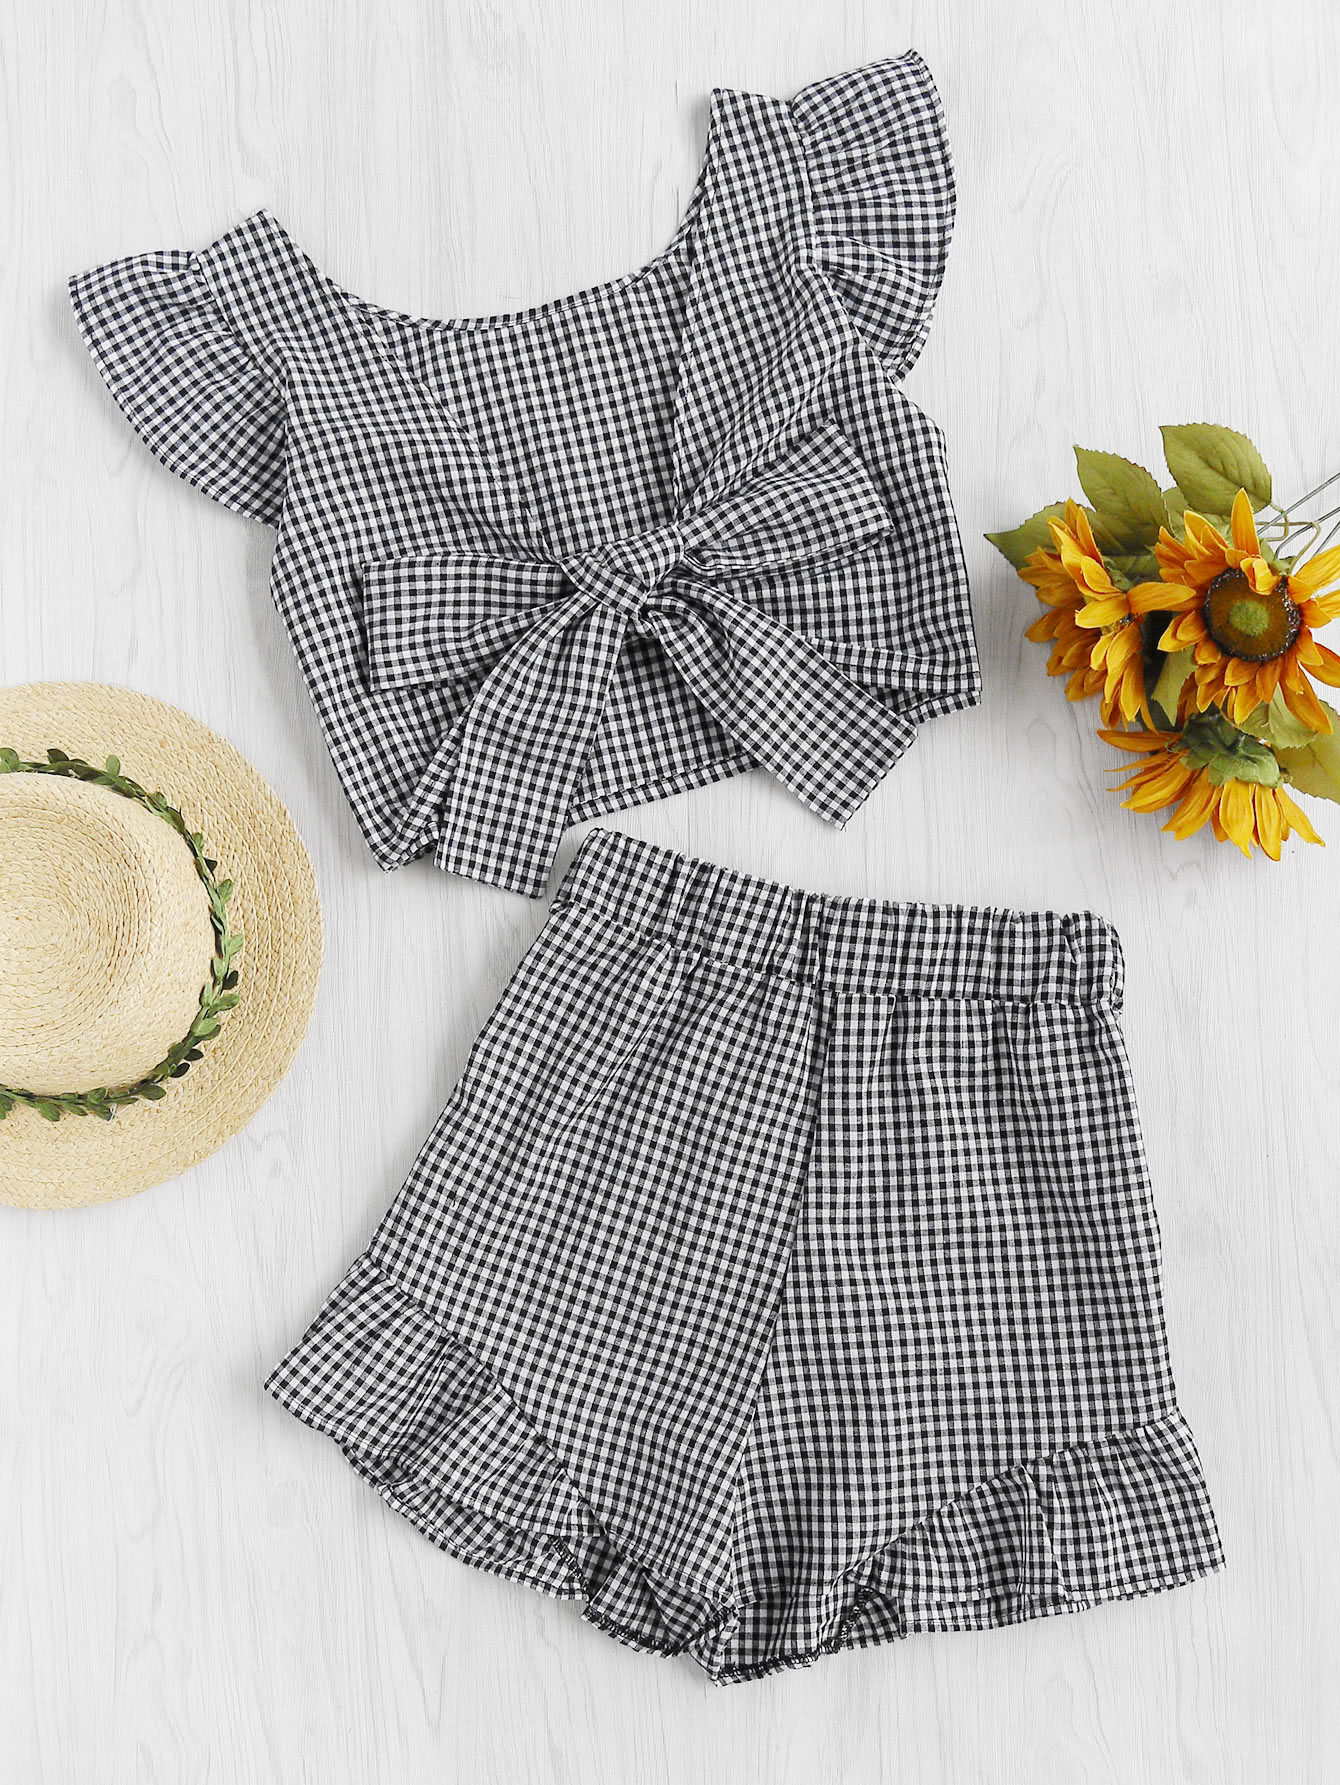 Gingham Frill Trim Bow Tie Back Top With Shorts велосипед stels navigator 380 lady 2013